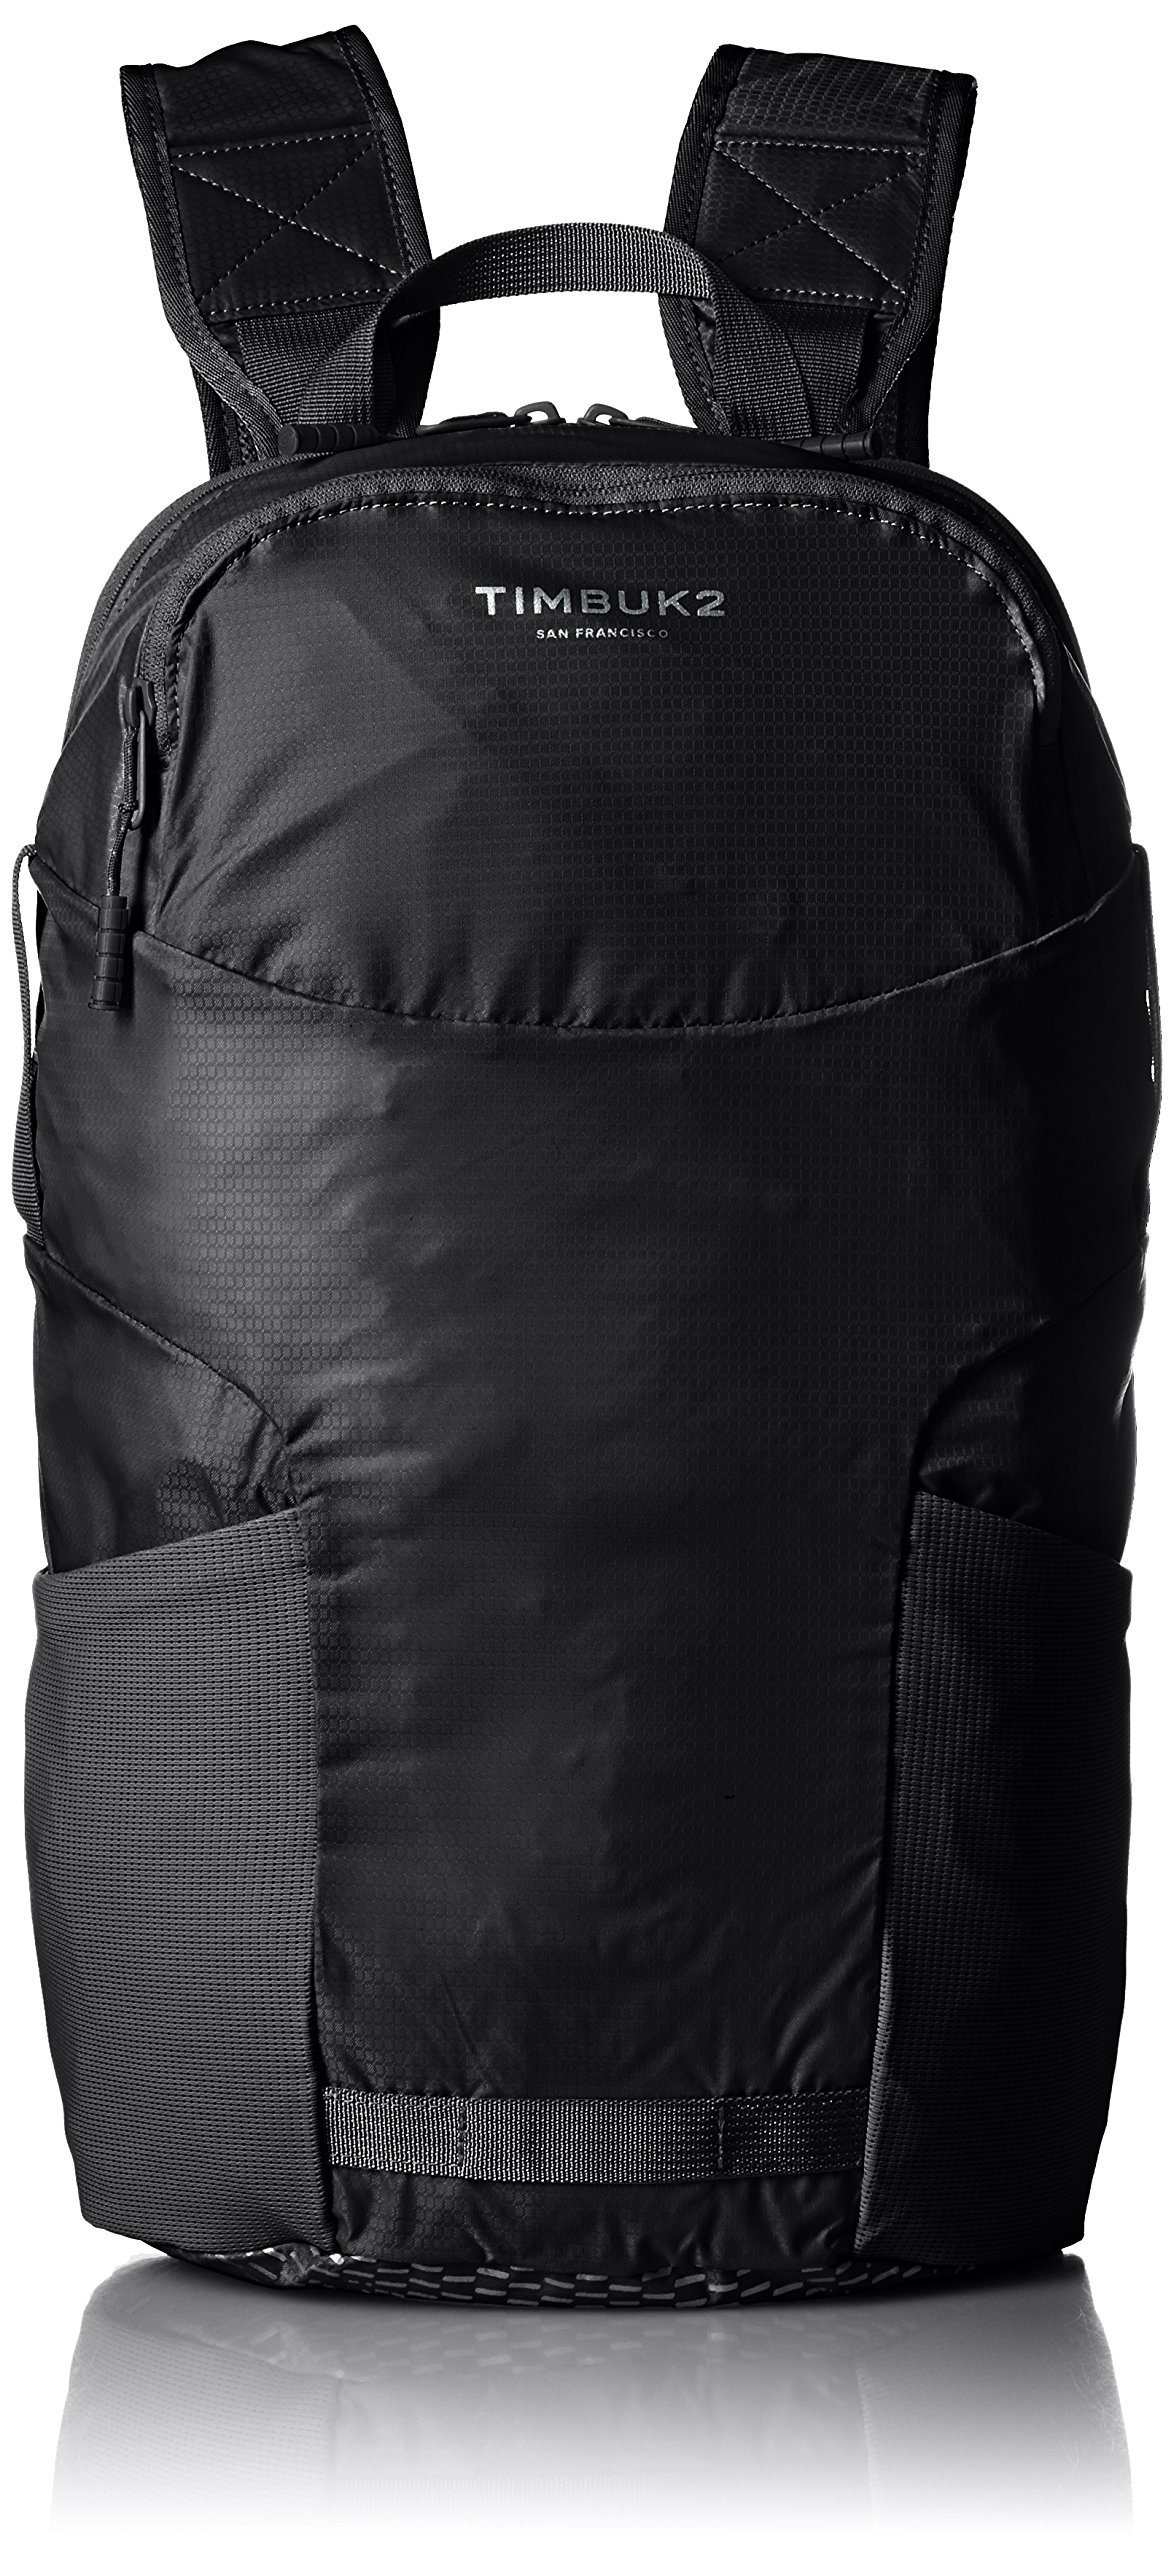 Timbuk2 Raider Pack, Jet Black by Timbuk2